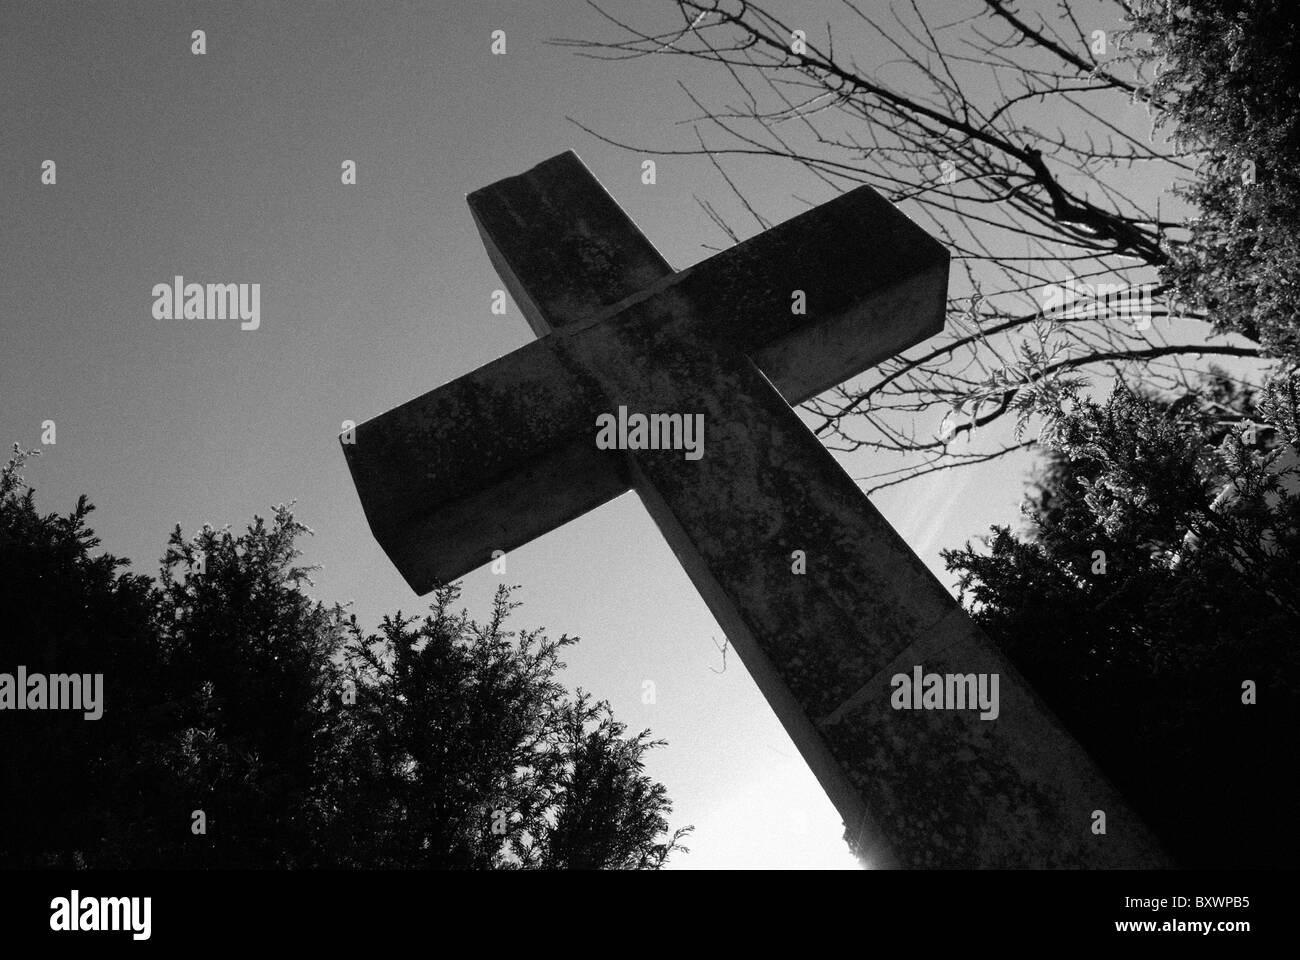 STONE CROSS SILHOUETTED - Stock Image